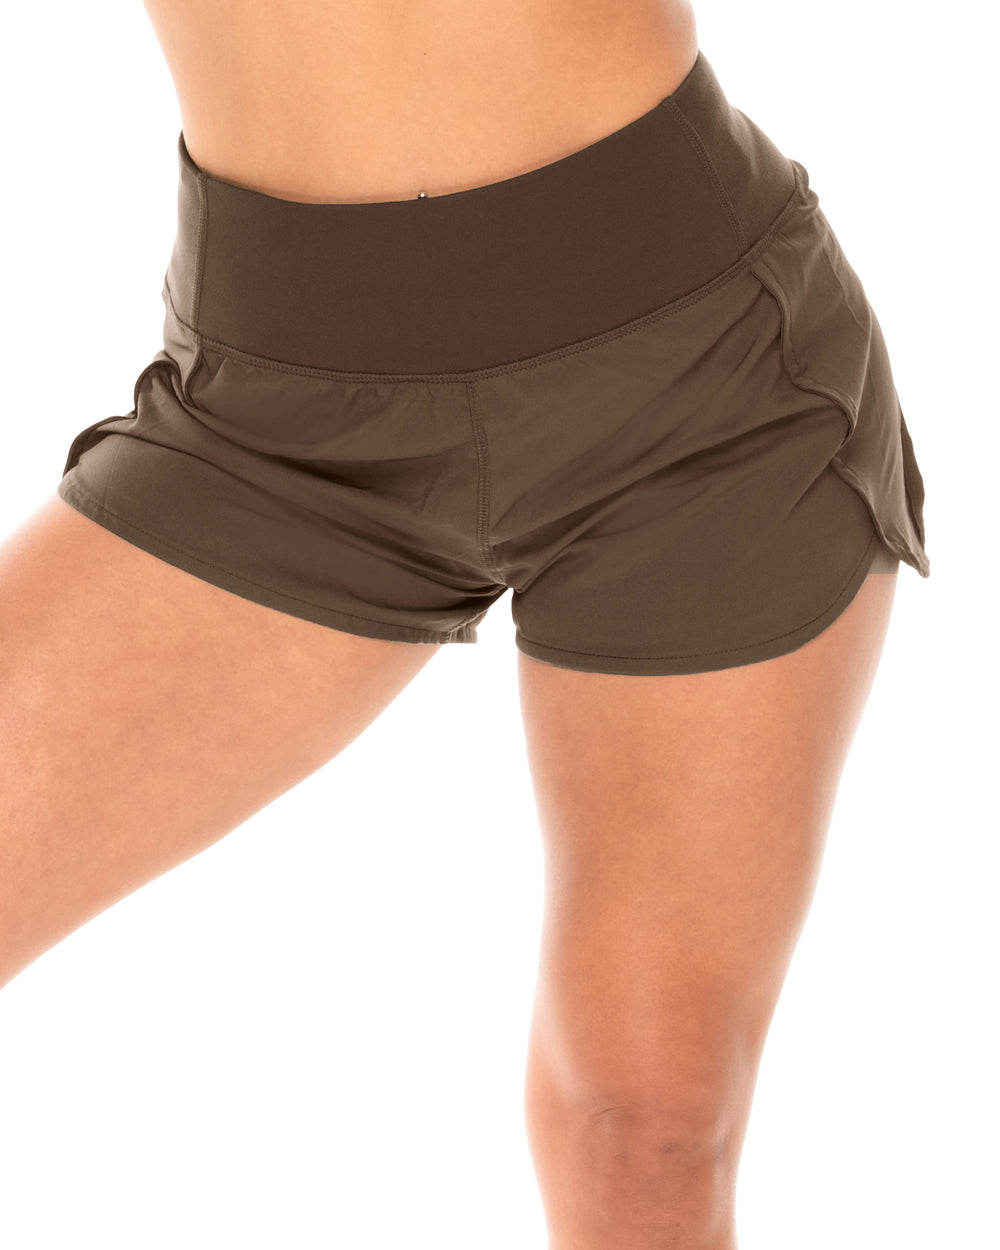 Oversized Running Shorts - Olive